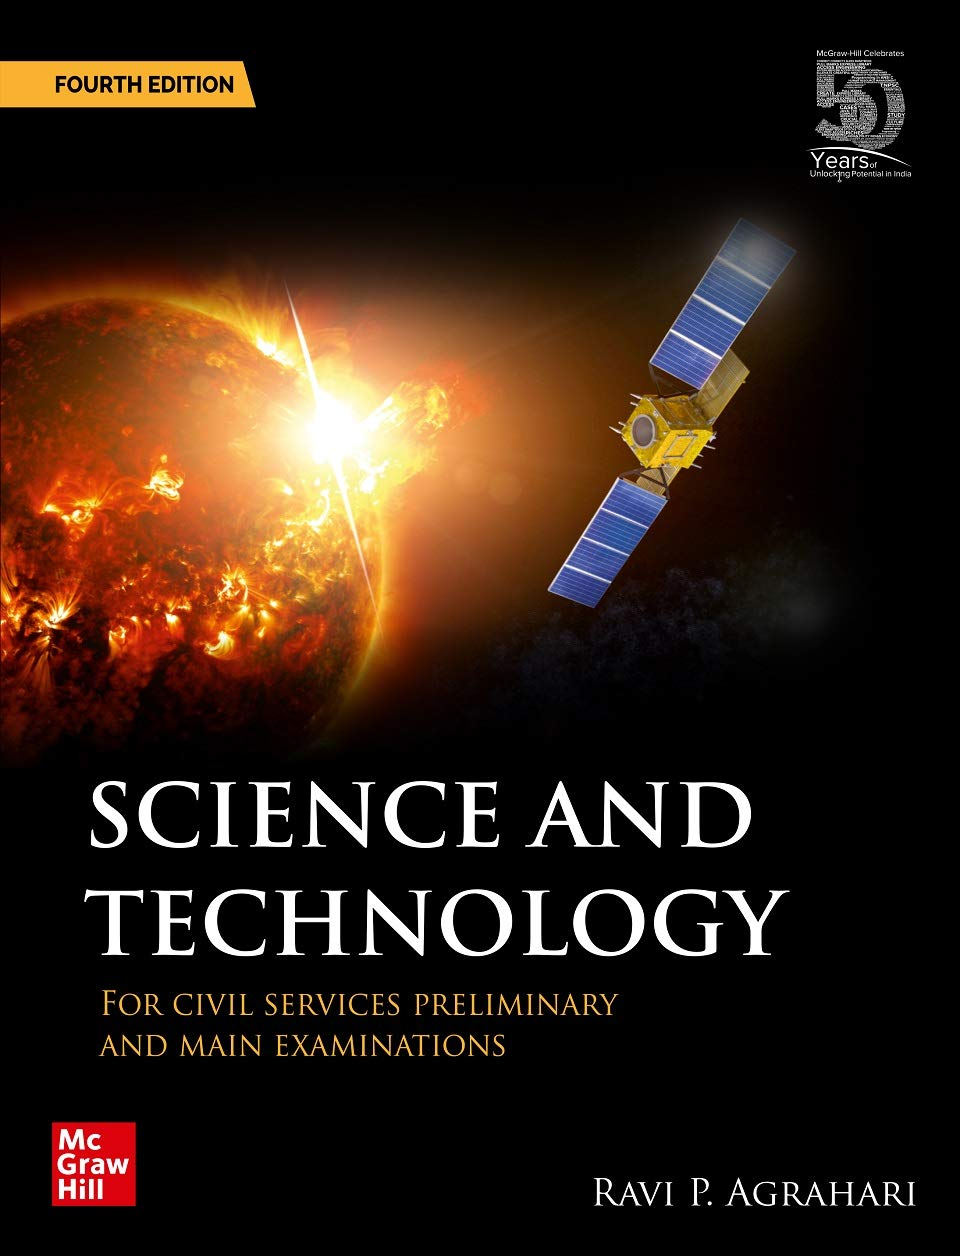 Science and Technology for Civil Services Preliminary and Main Examinations | 4th Edition